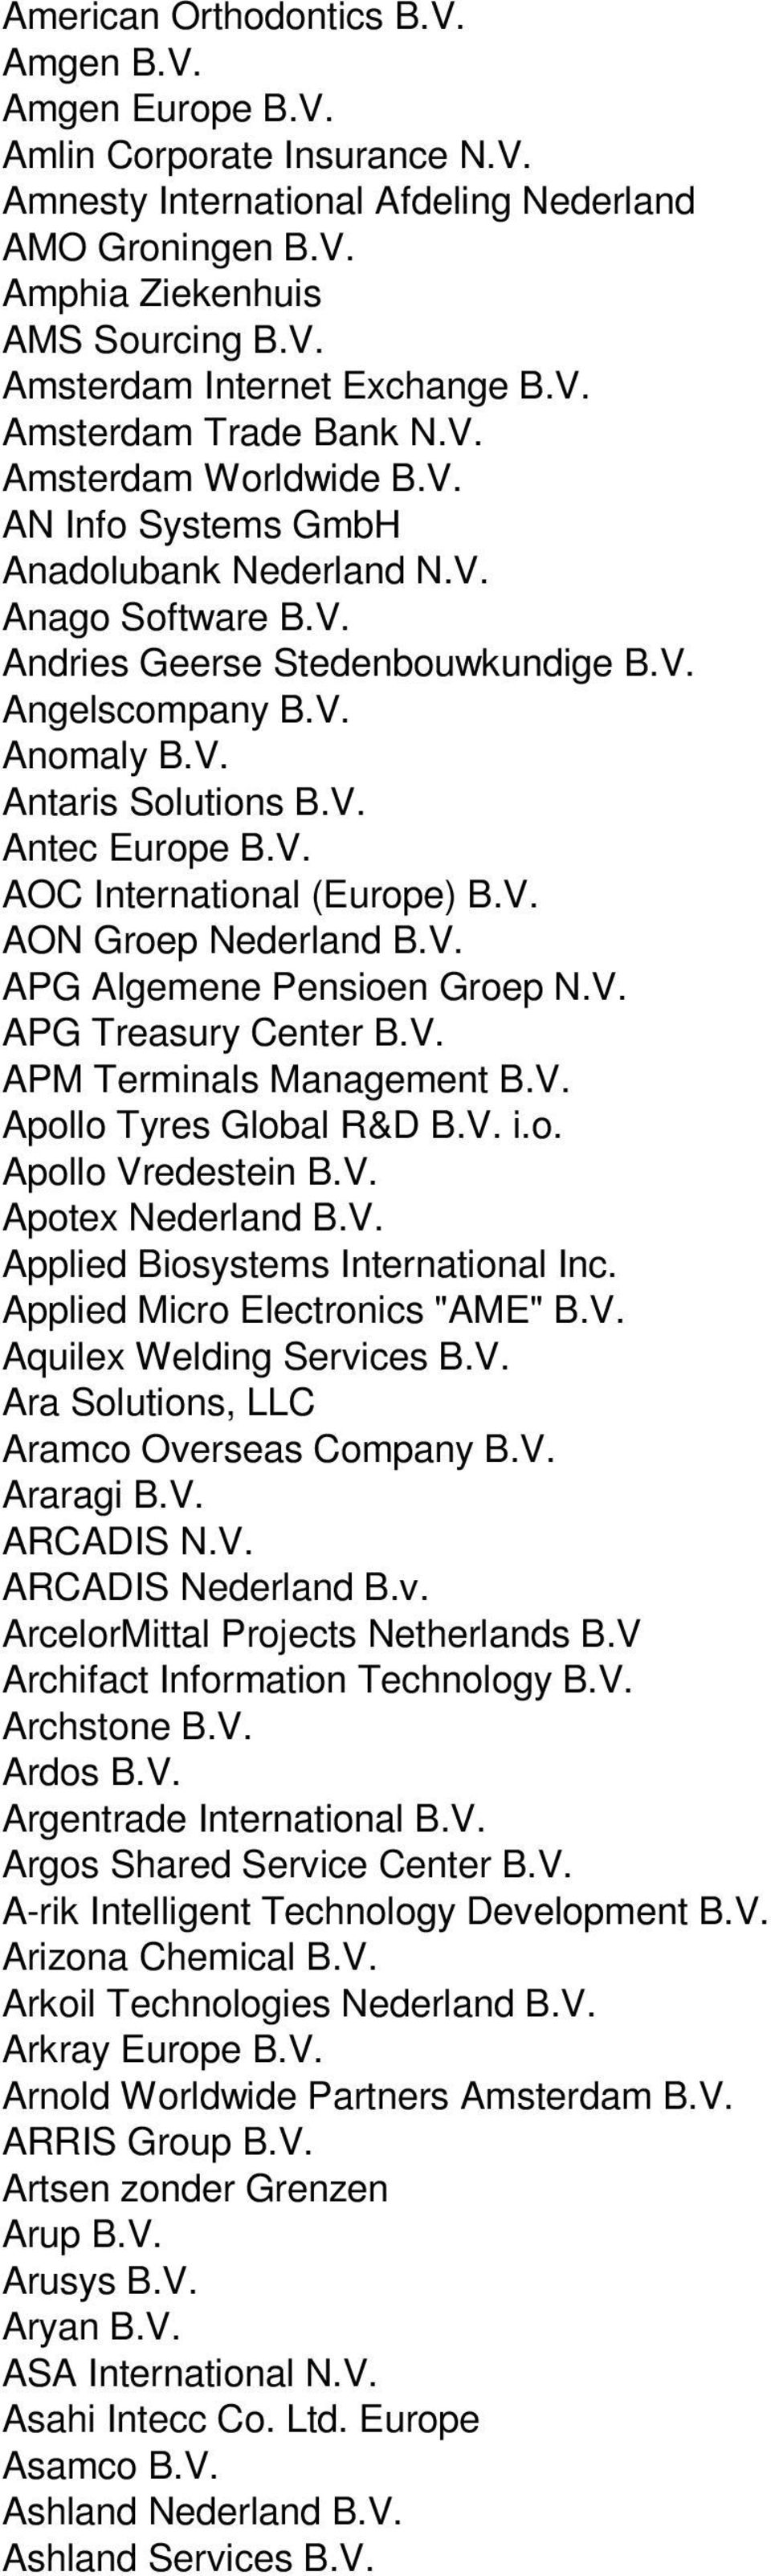 V. Antec Europe B.V. AOC International (Europe) B.V. AON Groep Nederland B.V. APG Algemene Pensioen Groep N.V. APG Treasury Center B.V. APM Terminals Management B.V. Apollo Tyres Global R&D B.V. i.o. Apollo Vredestein B.